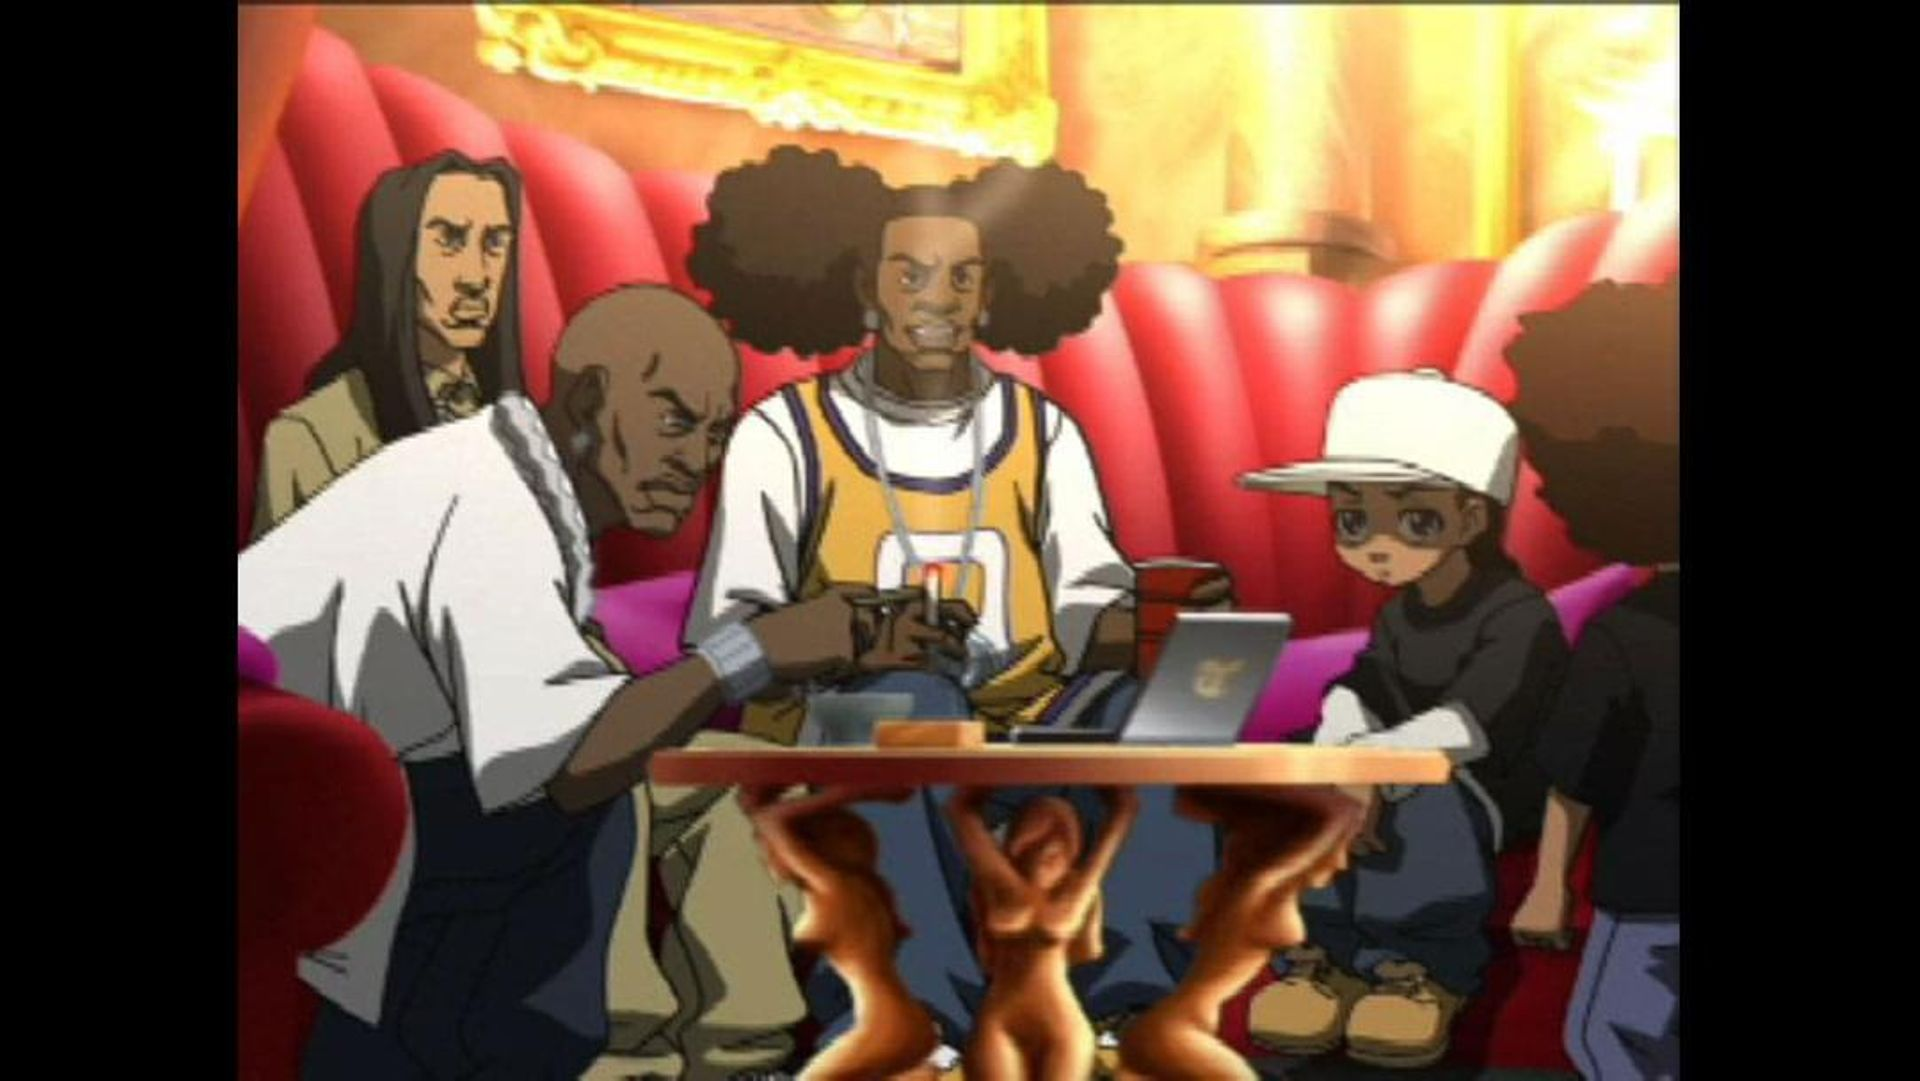 The Boondocks - Thugnificent Arrives